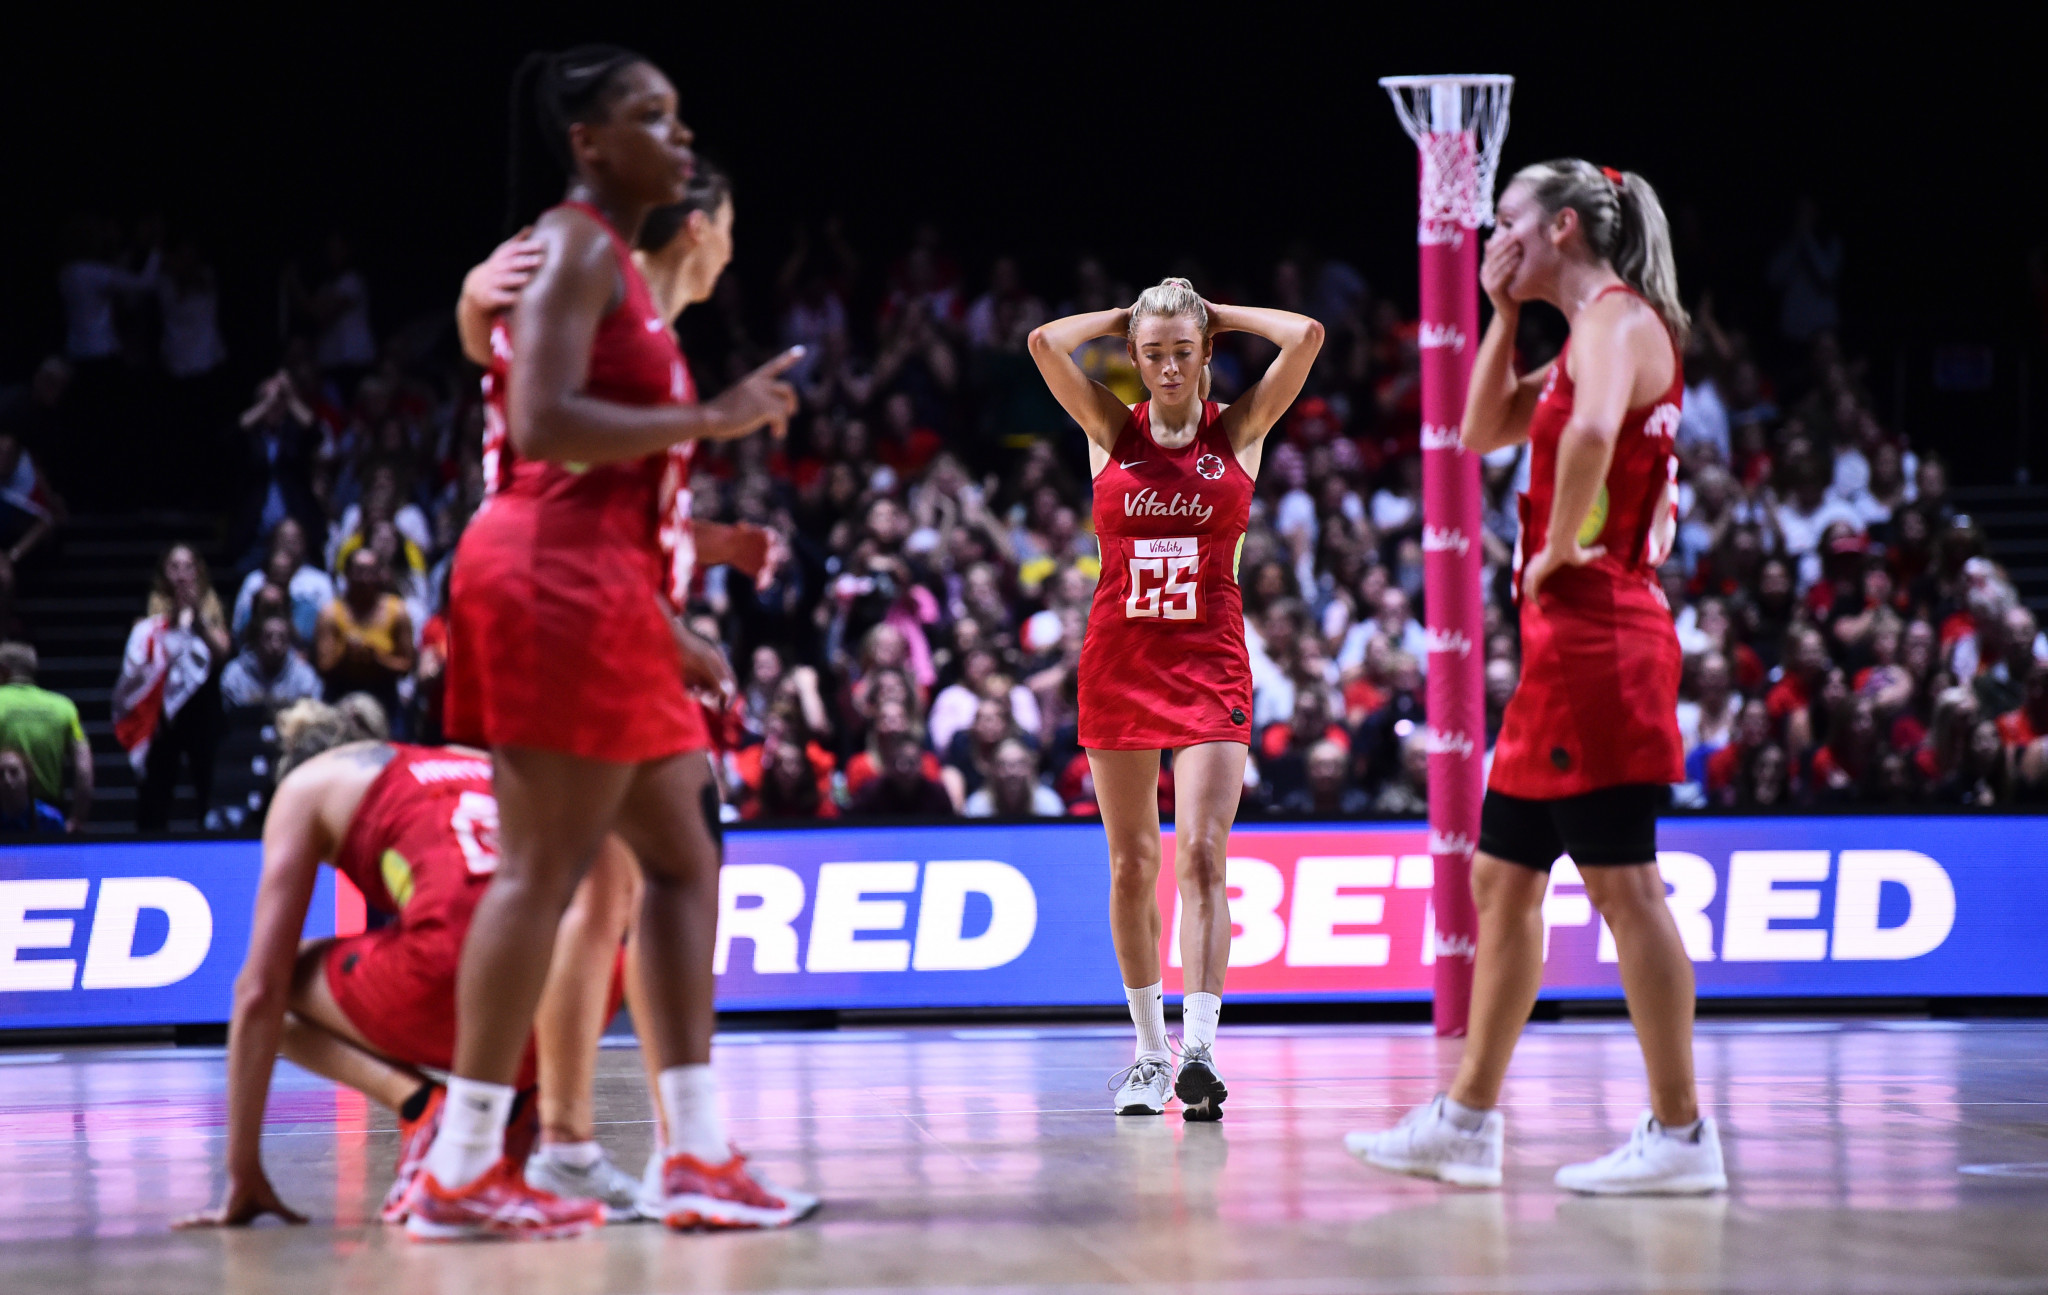 England were knocked out of last year's Netball World Cup by New Zealand ©Getty Images